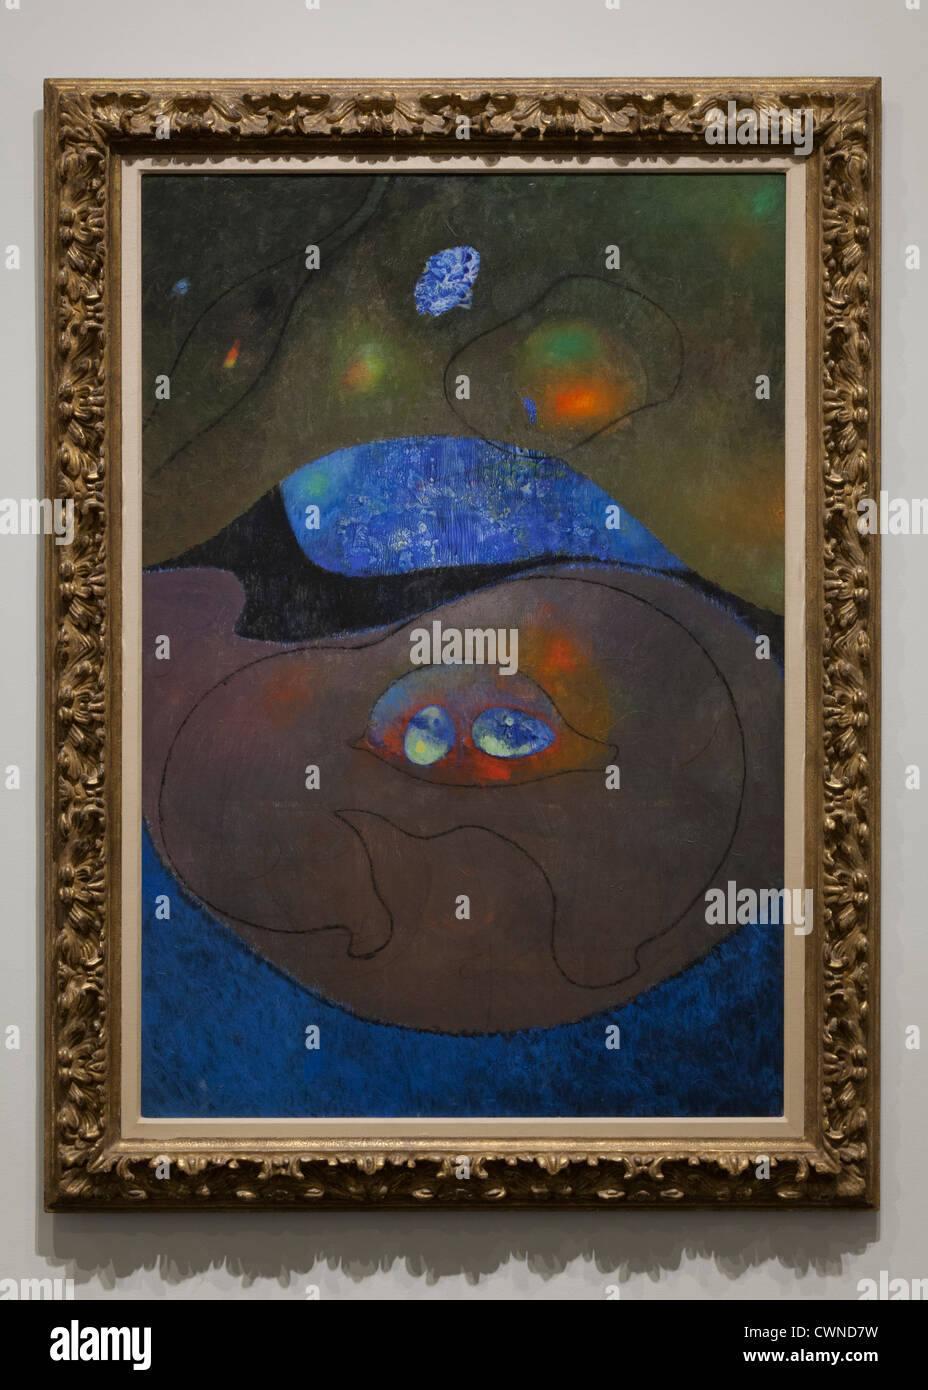 'Beauty of the Night' by Max Ernst, 1954 - Stock Image